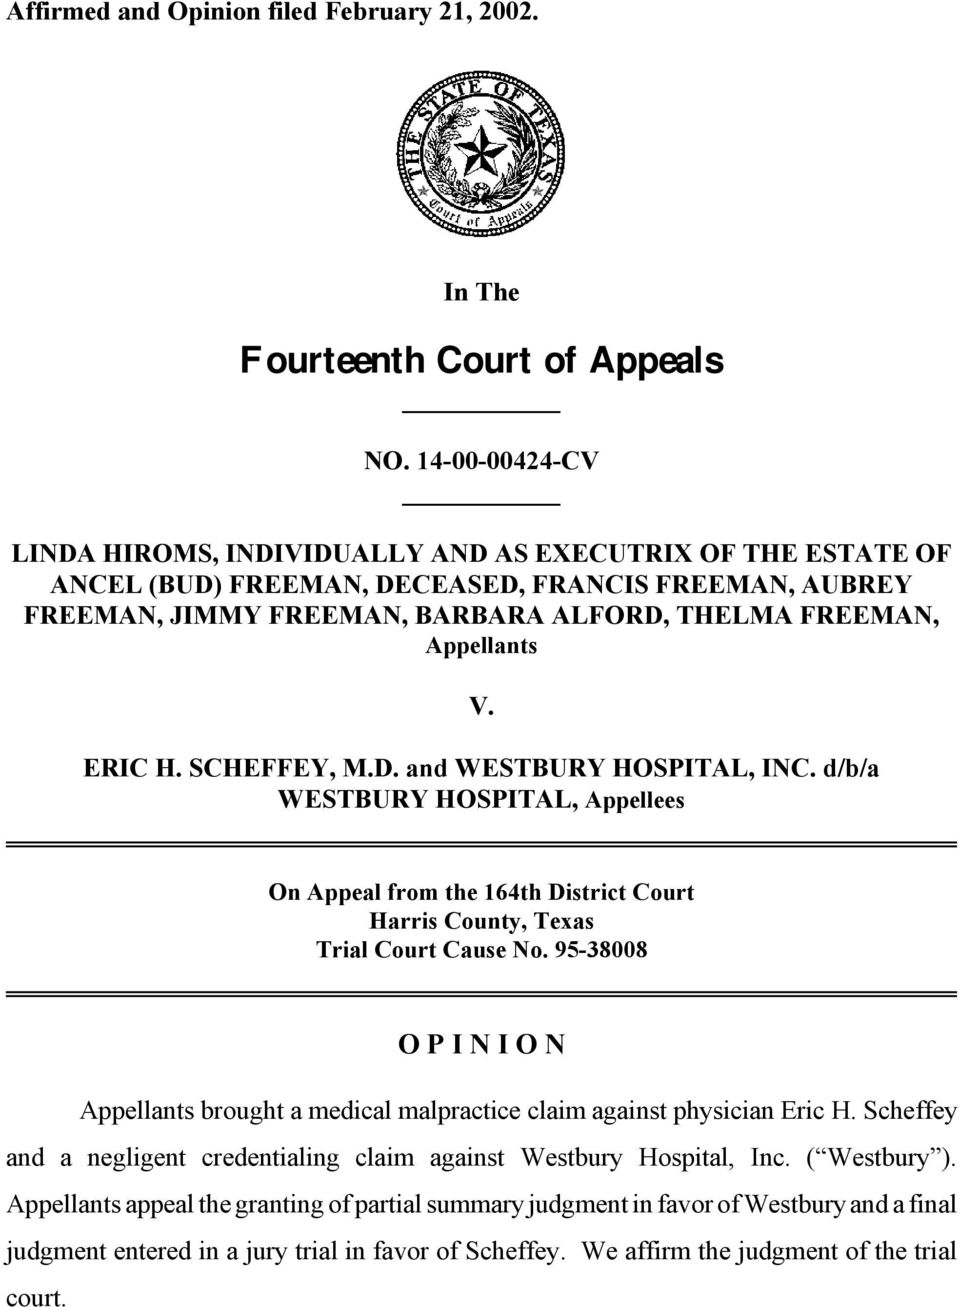 ERIC H. SCHEFFEY, M.D. and WESTBURY HOSPITAL, INC. d/b/a WESTBURY HOSPITAL, Appellees On Appeal from the 164th District Court Harris County, Texas Trial Court Cause No.